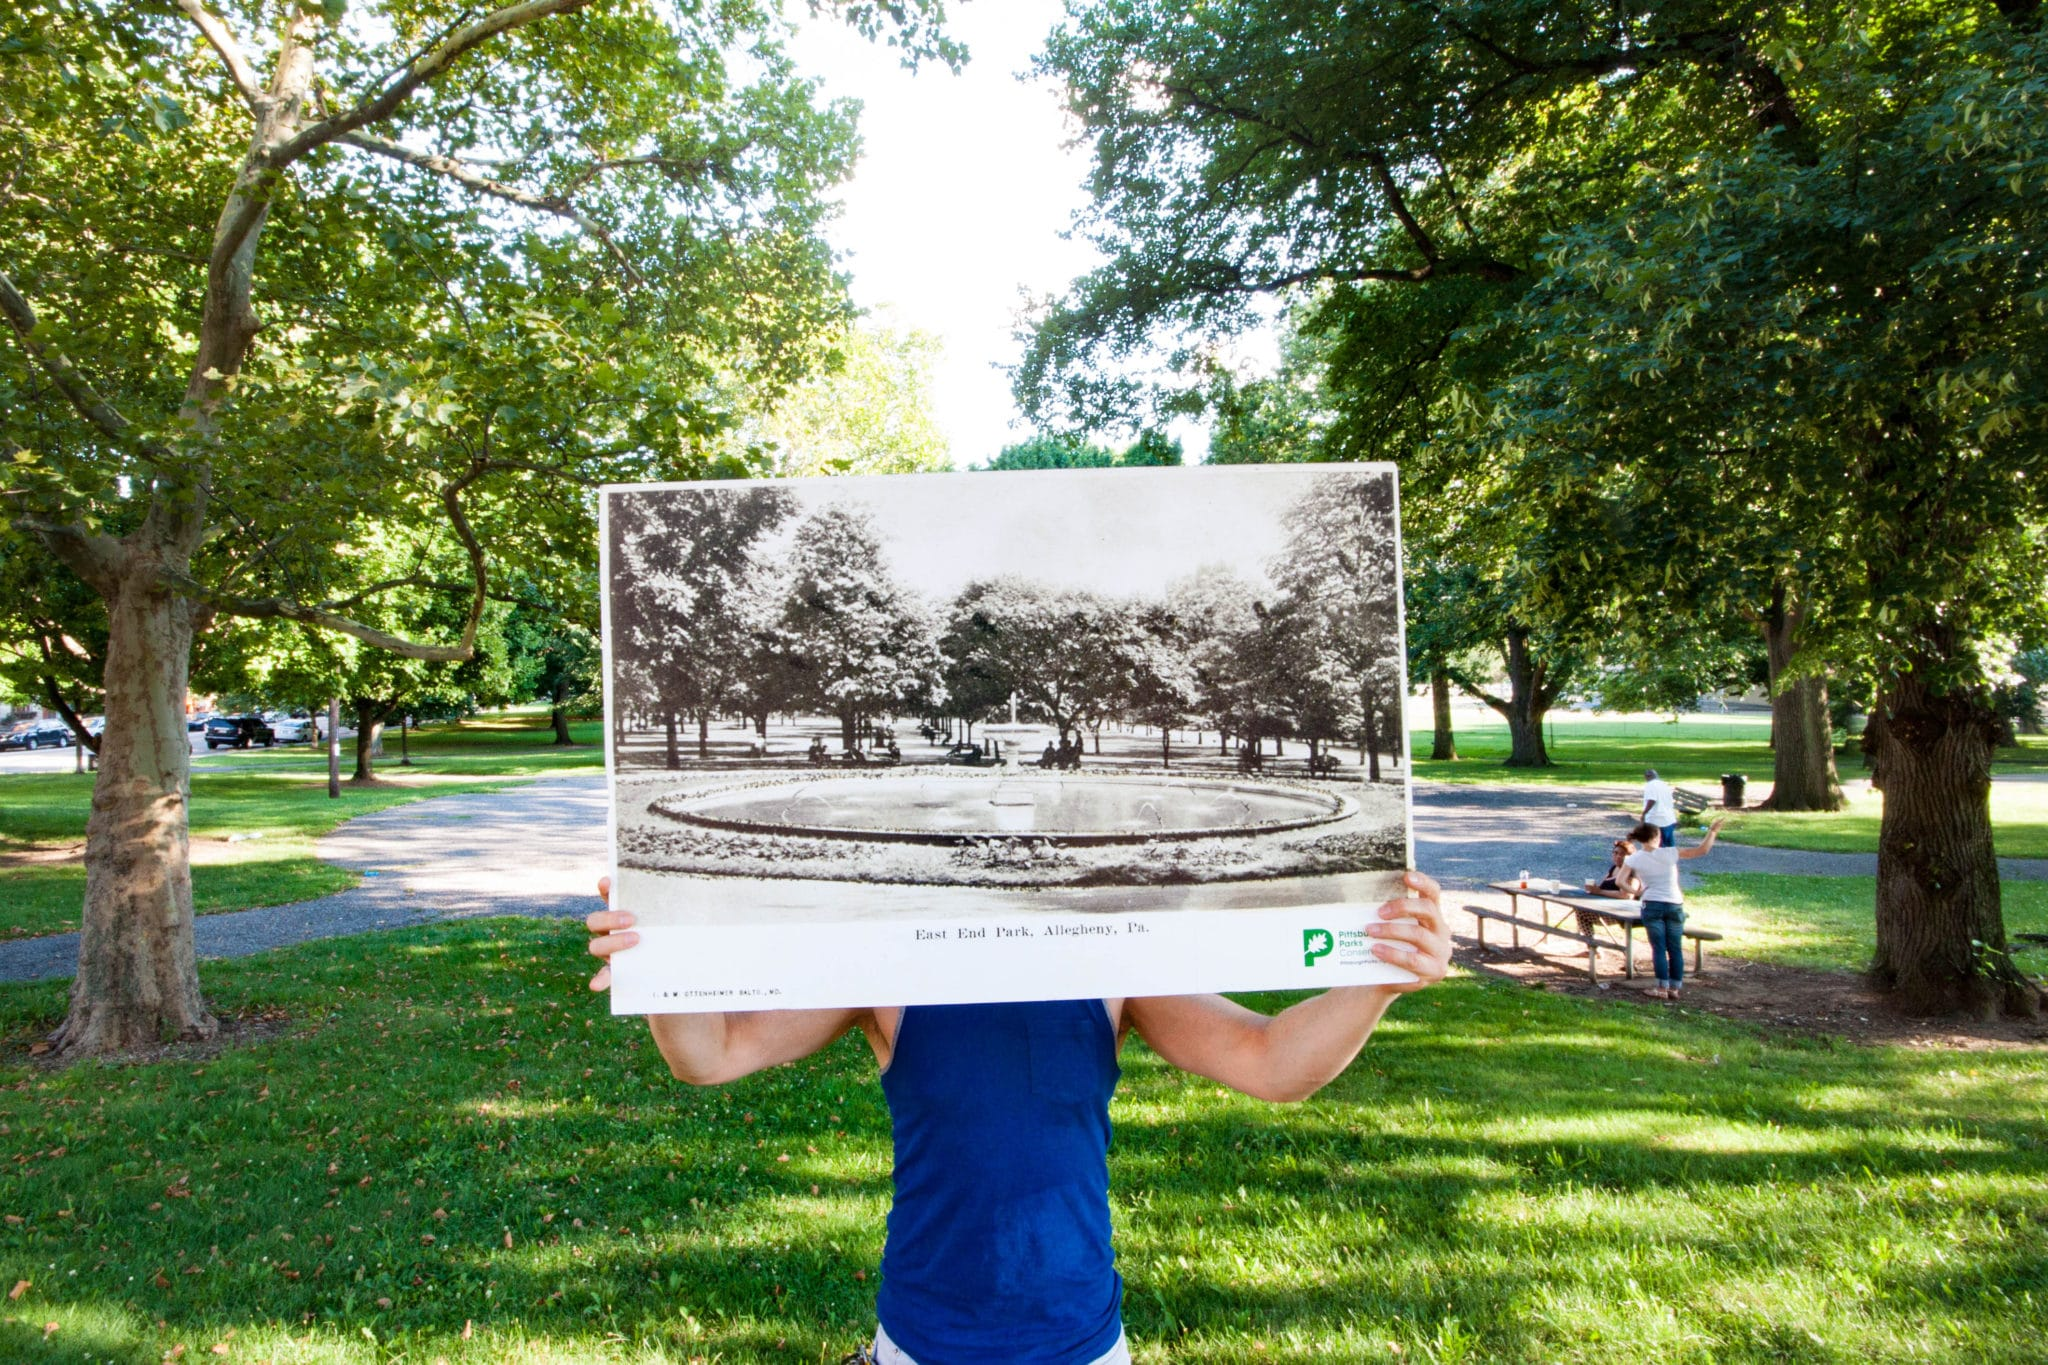 An image of a park-goer holding a historical photograph of Allegheny Commons.